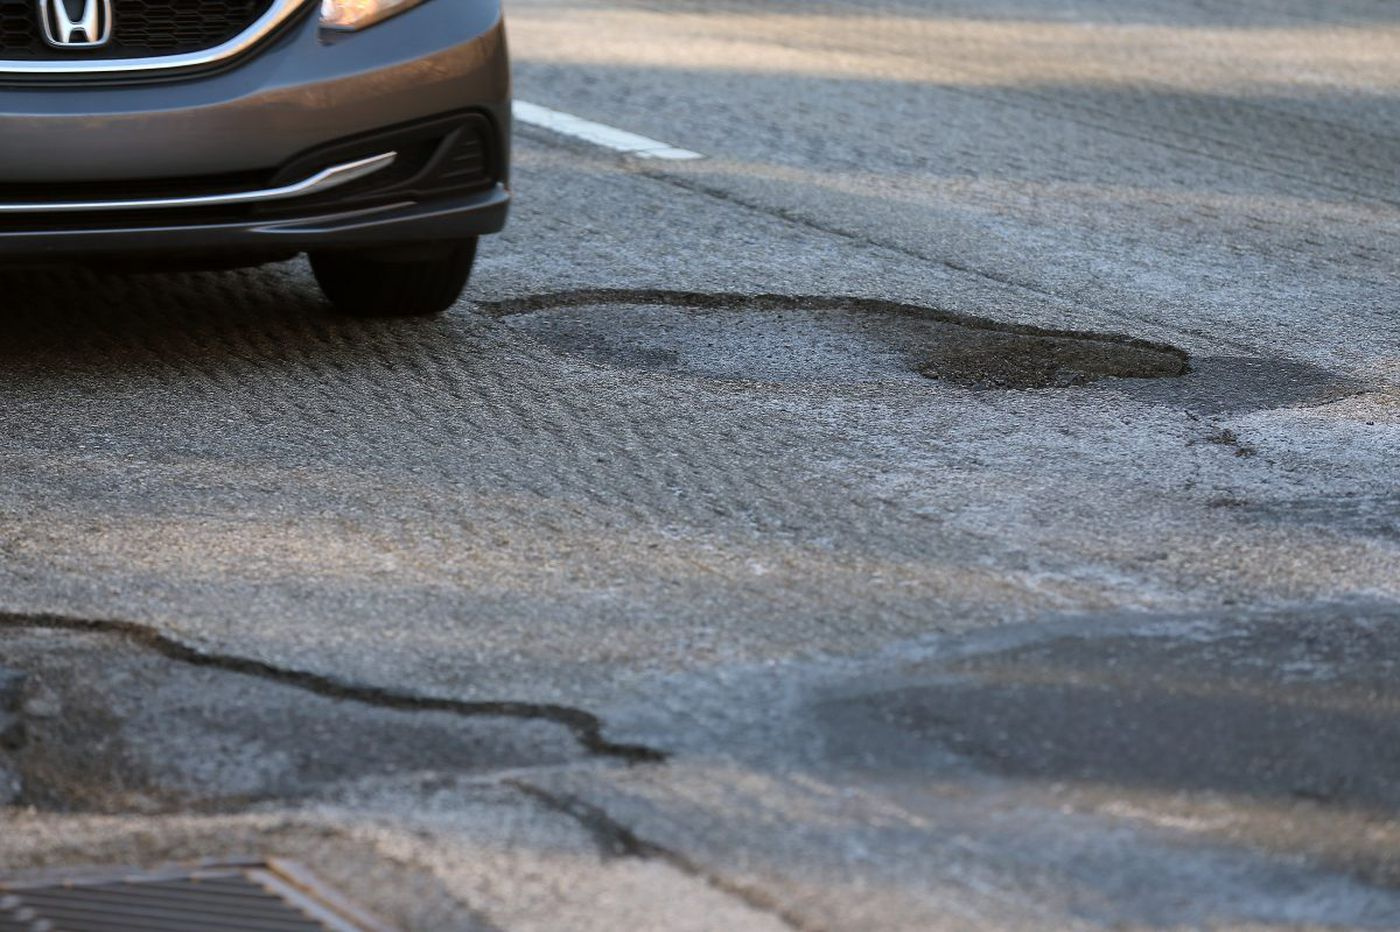 We are losing the war against potholes | Opinion